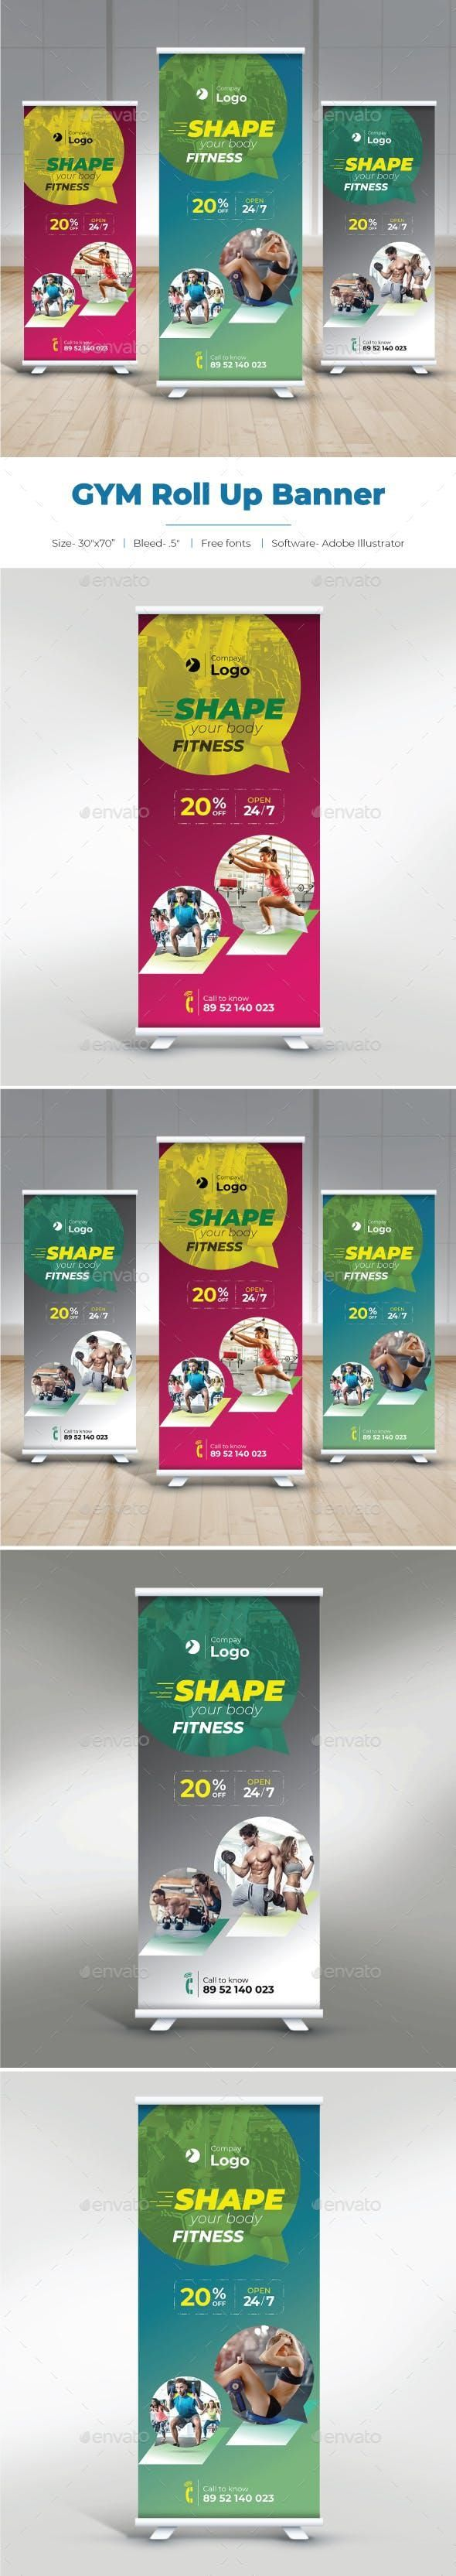 Gym Roll Up Banner #GraphicDesign #marketing #SignageDesign #graphicdesigner #gr...